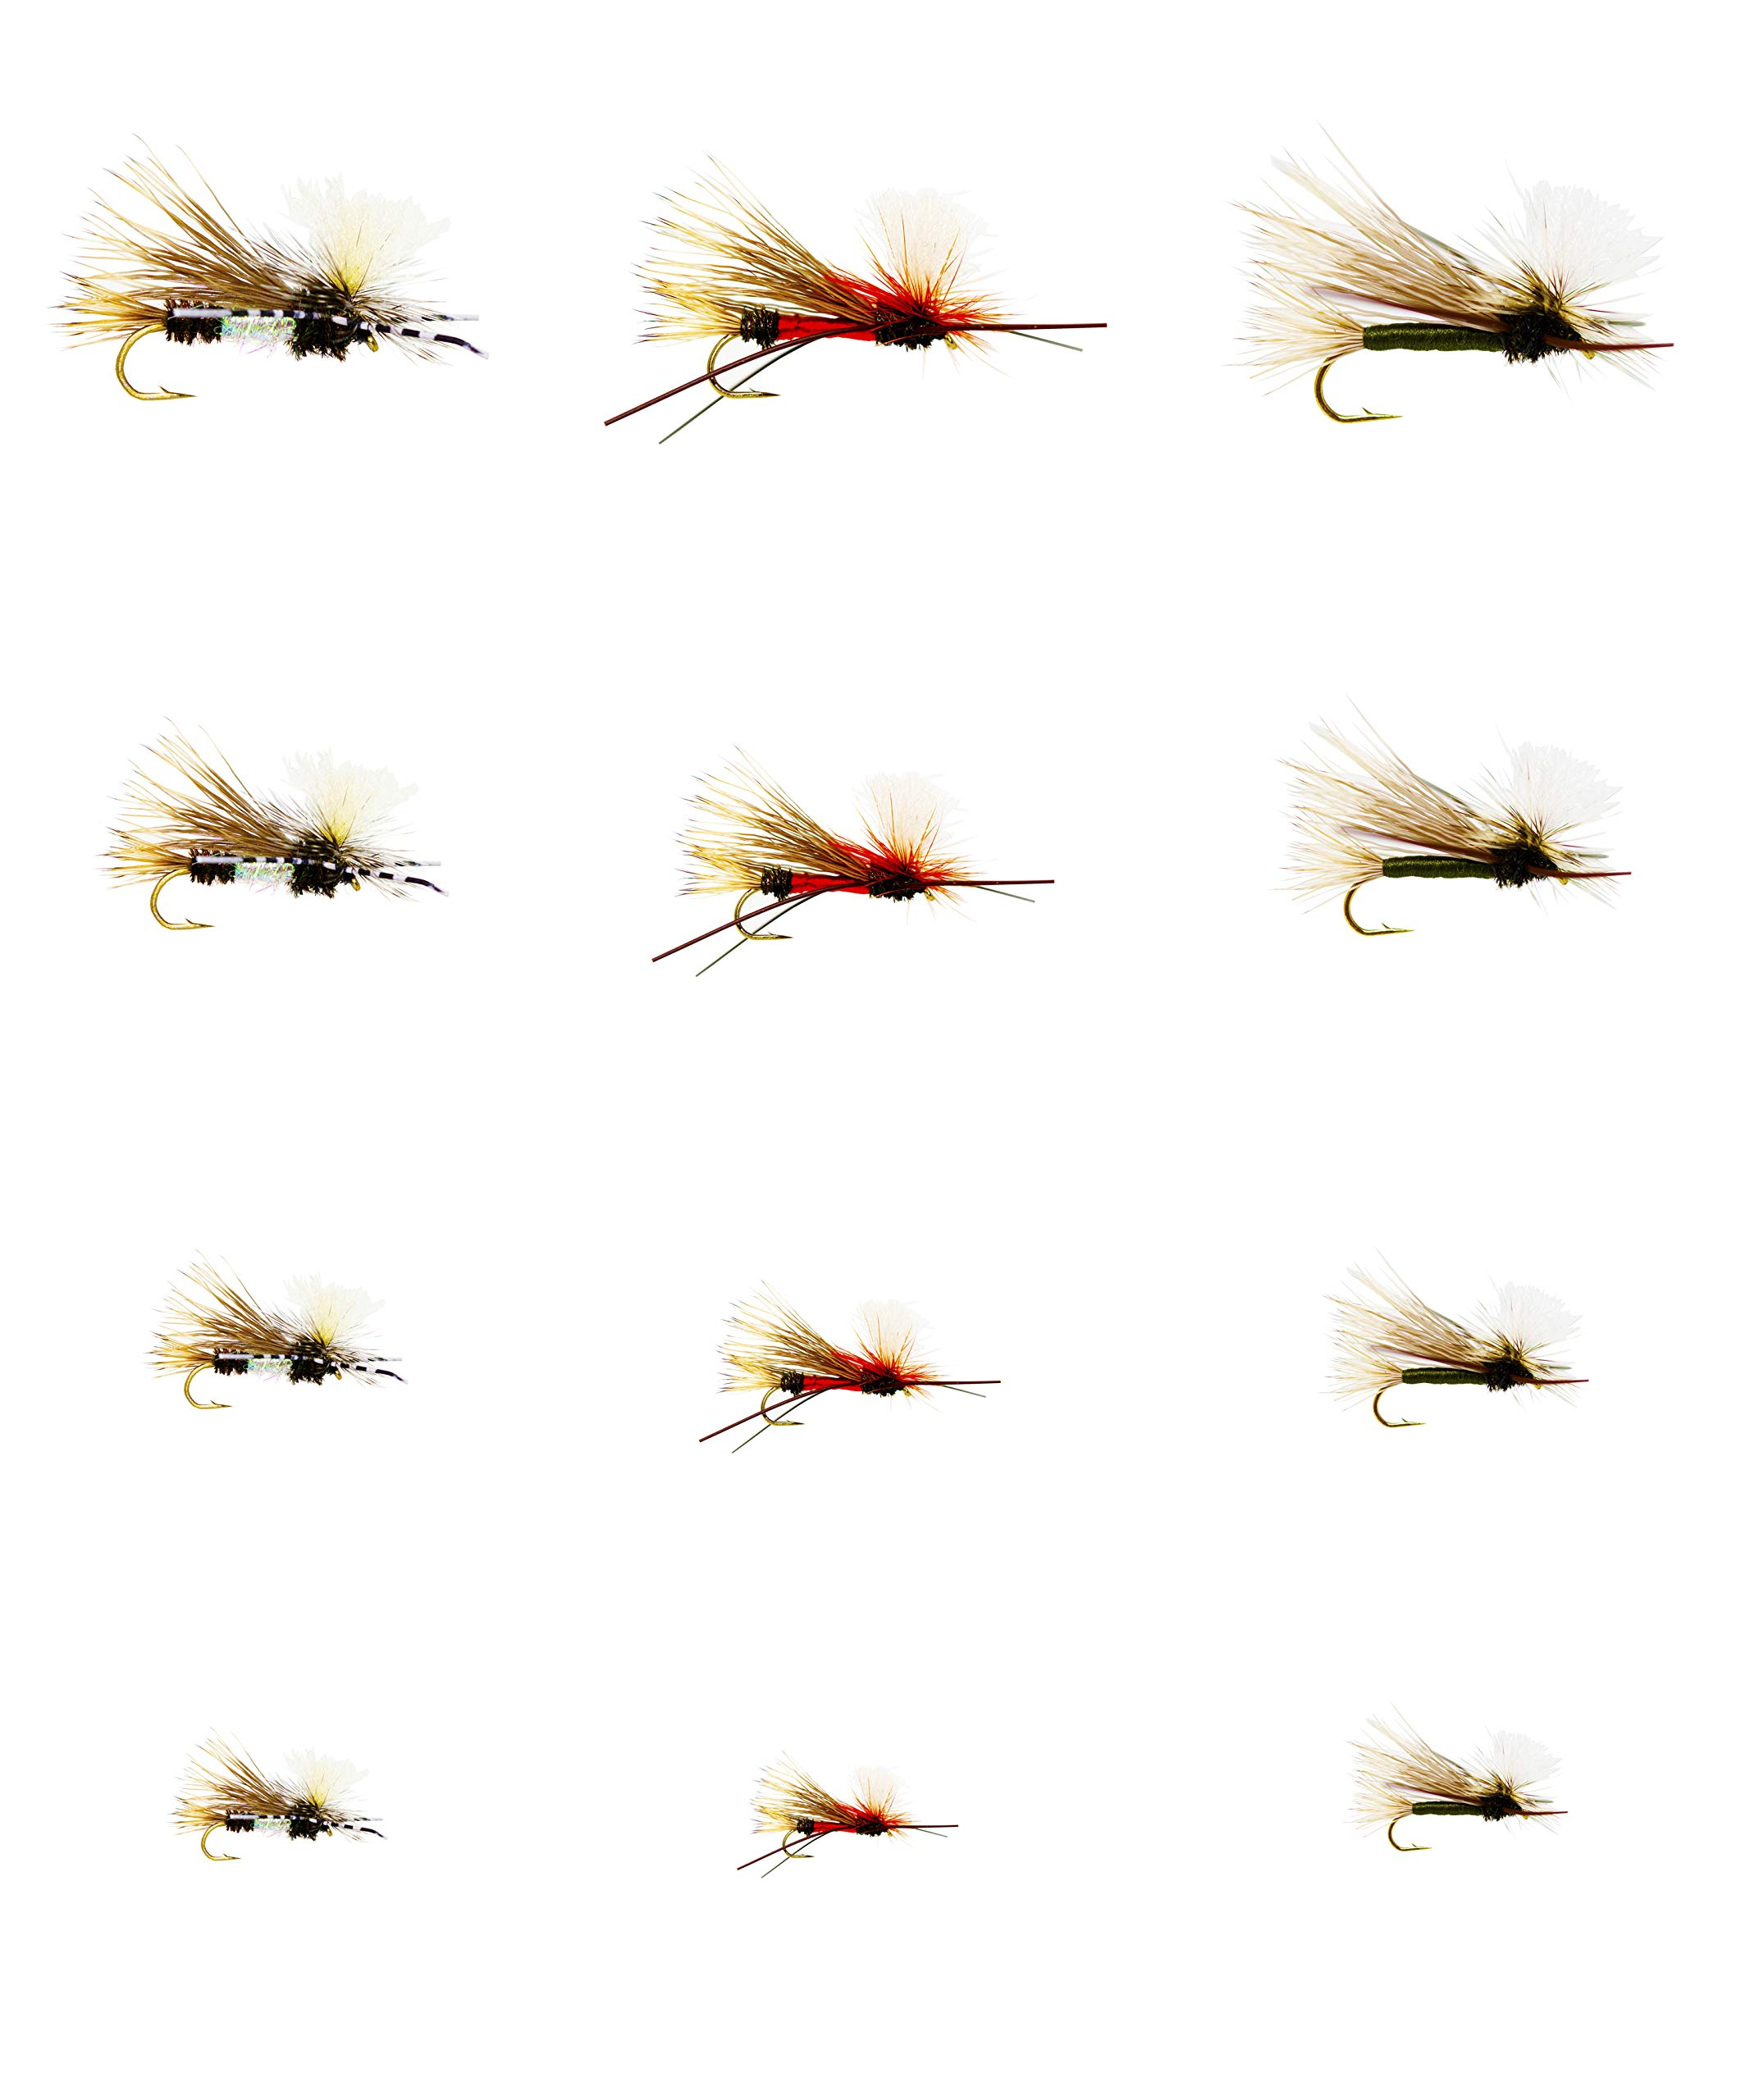 Outdoor Planet 12 PMX/Parachute Madame X Dry Fly for Trout Fly Fishing Flies Lure Assortment by Outdoor Planet